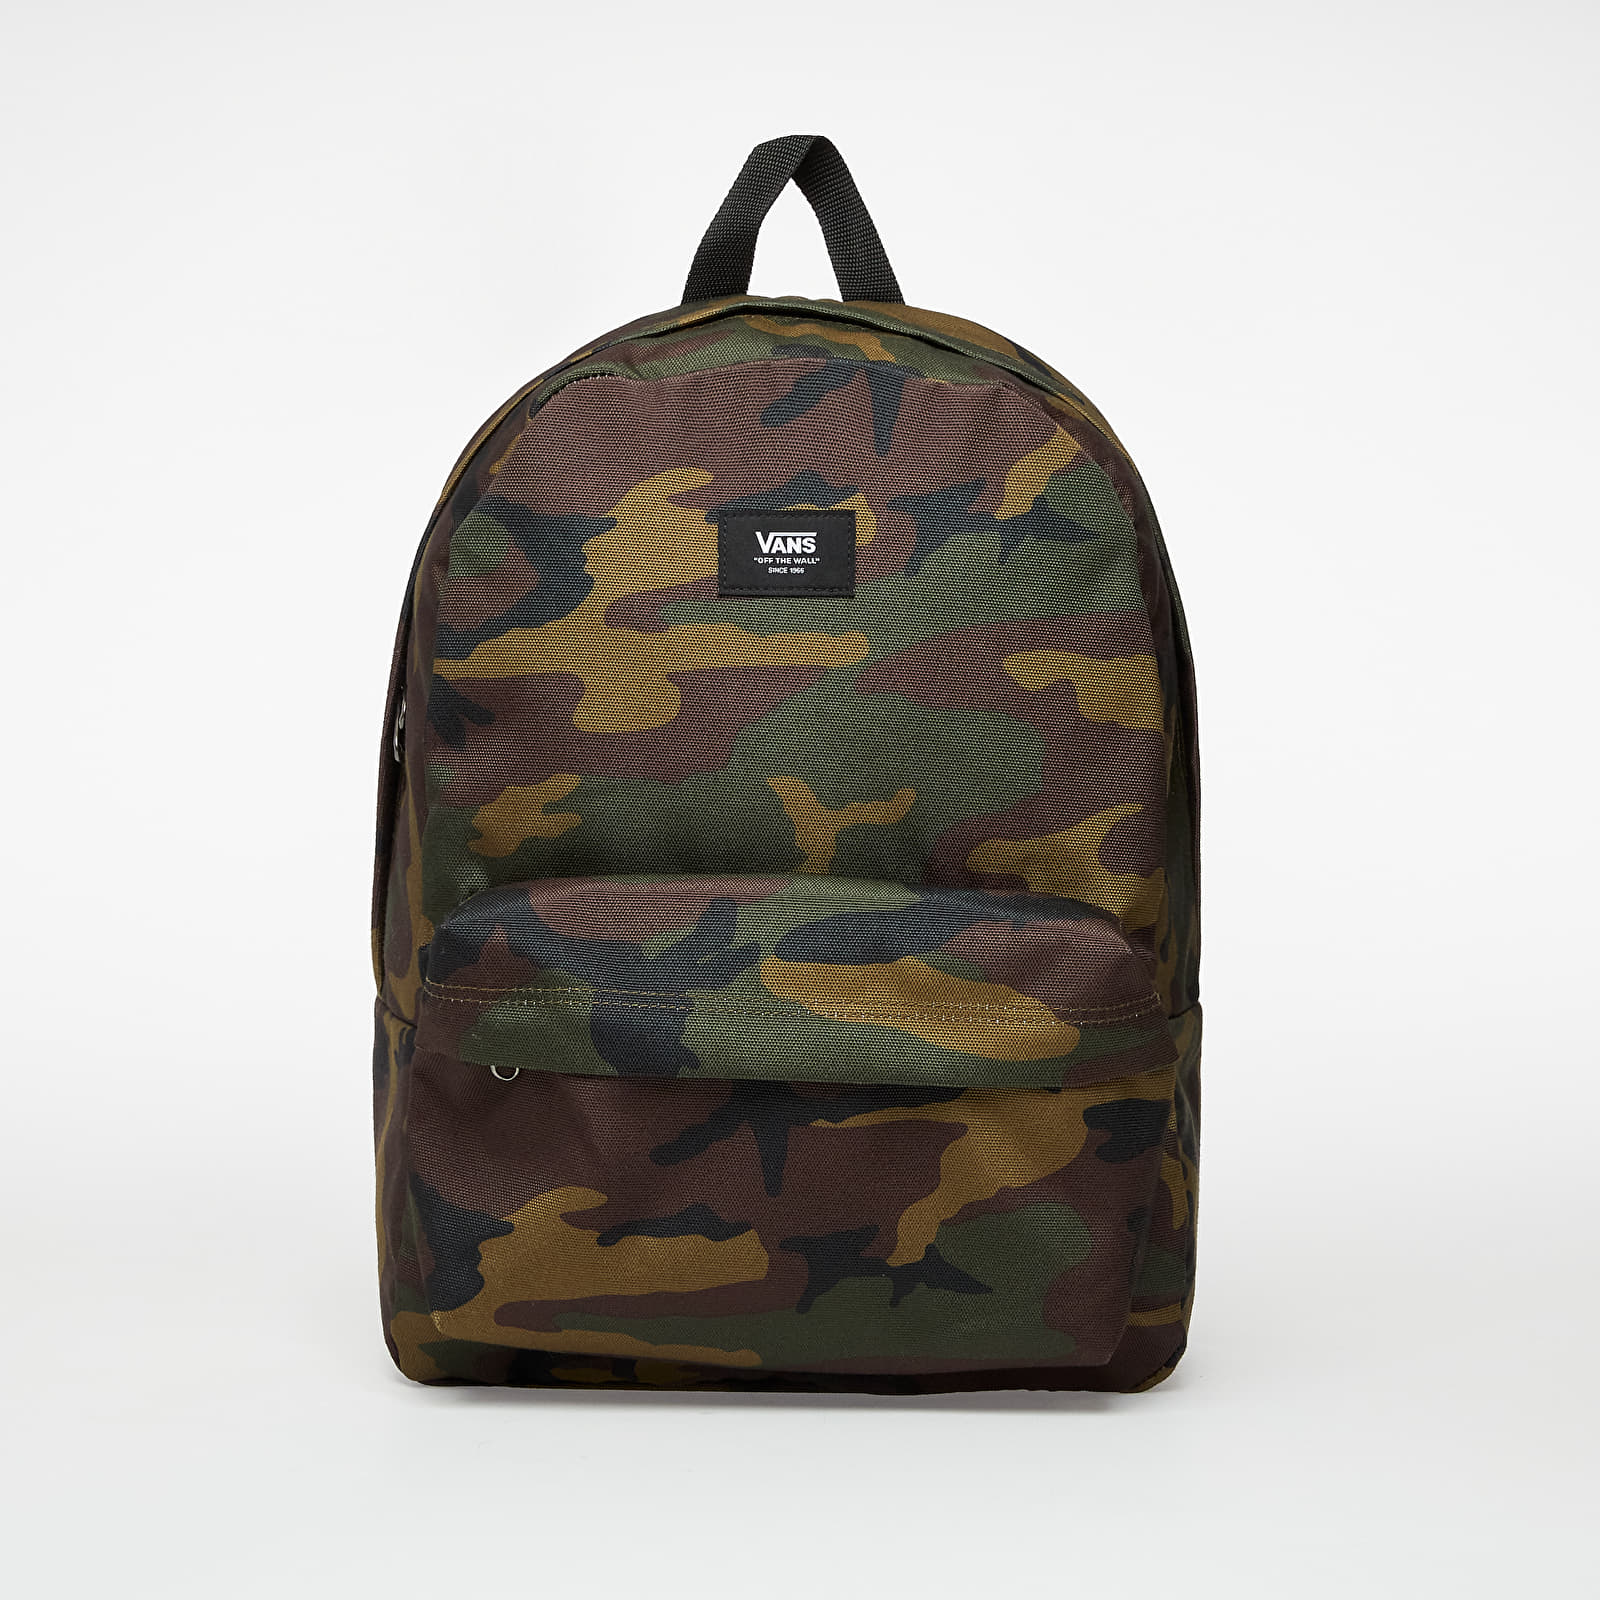 Ruksaci Vans Old Skool III Backpack Classic Camo